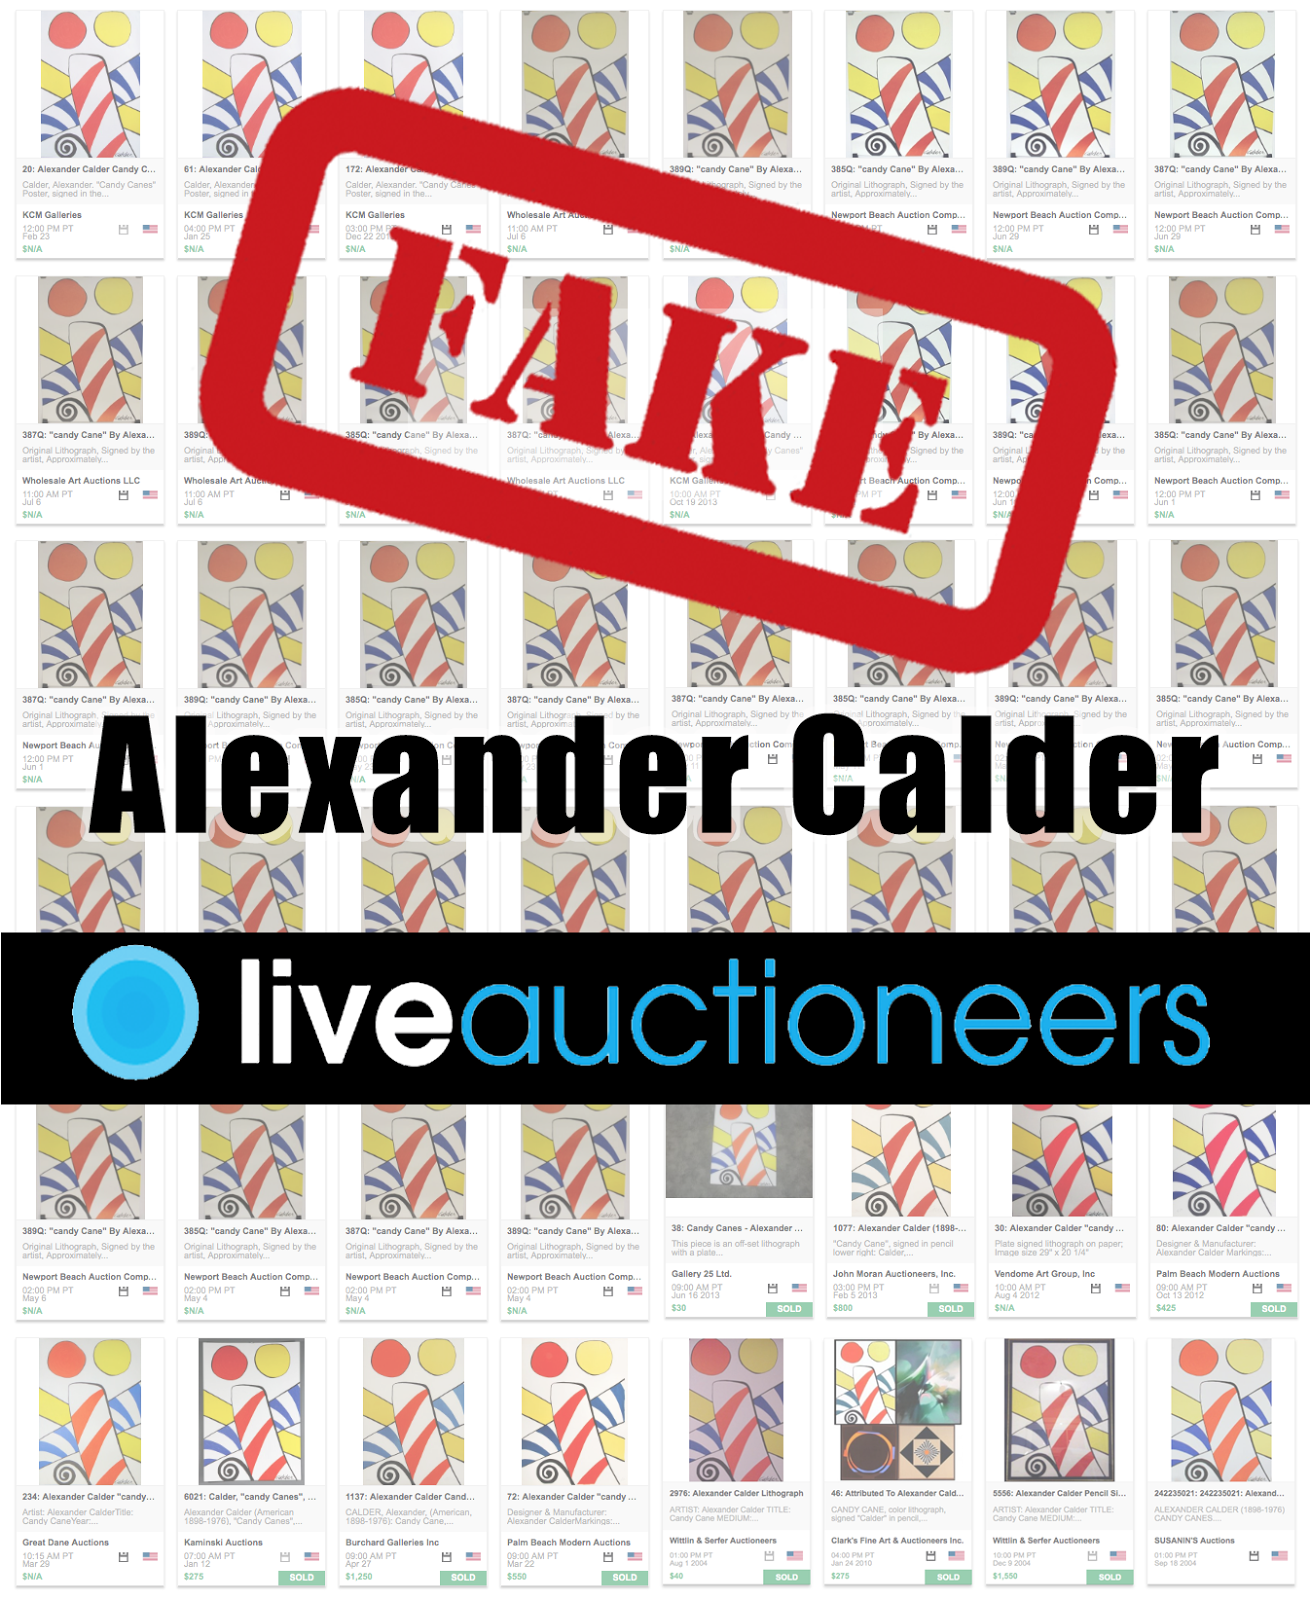 Fraudulent Calder listings have appeared on Live Auctioneers over 44 times